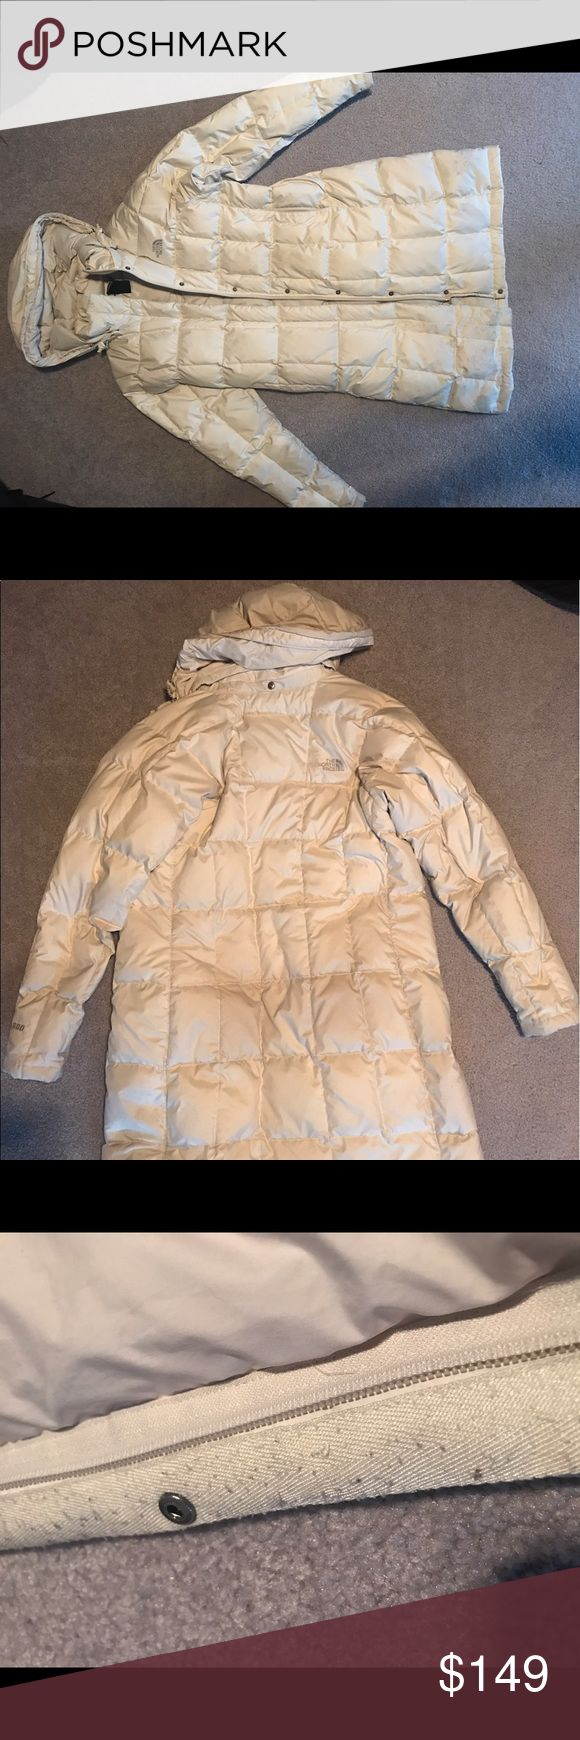 ‼️SALE‼️North Face wintercoat parka medium puffer Cream/white winter coat parka. Super warm and cozy winter coat. Get it now before prices go up in fall! Tried to show pilling on inside zipper. Detachable hood included. Offers welcome! The North Face Jackets & Coats Puffers